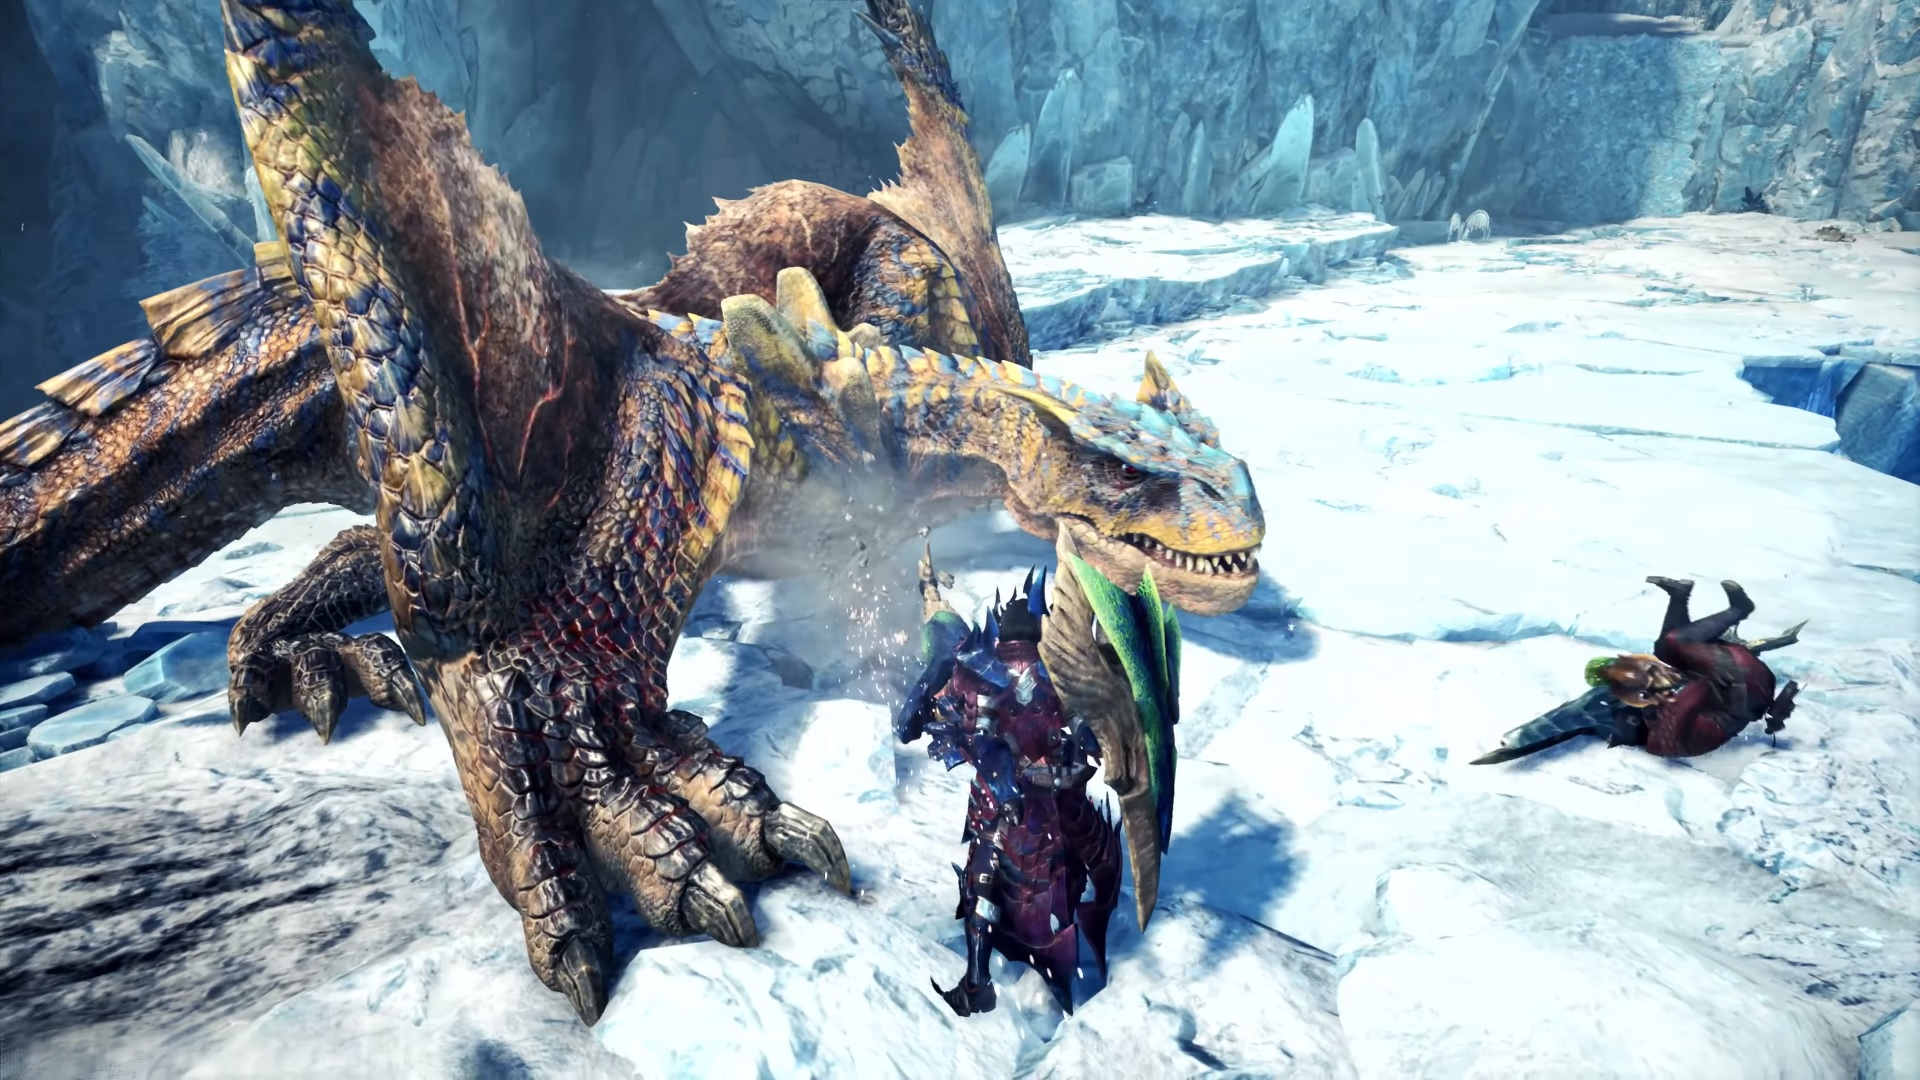 Mhw Best Bow Iceborne Guide Build Tips June 2020